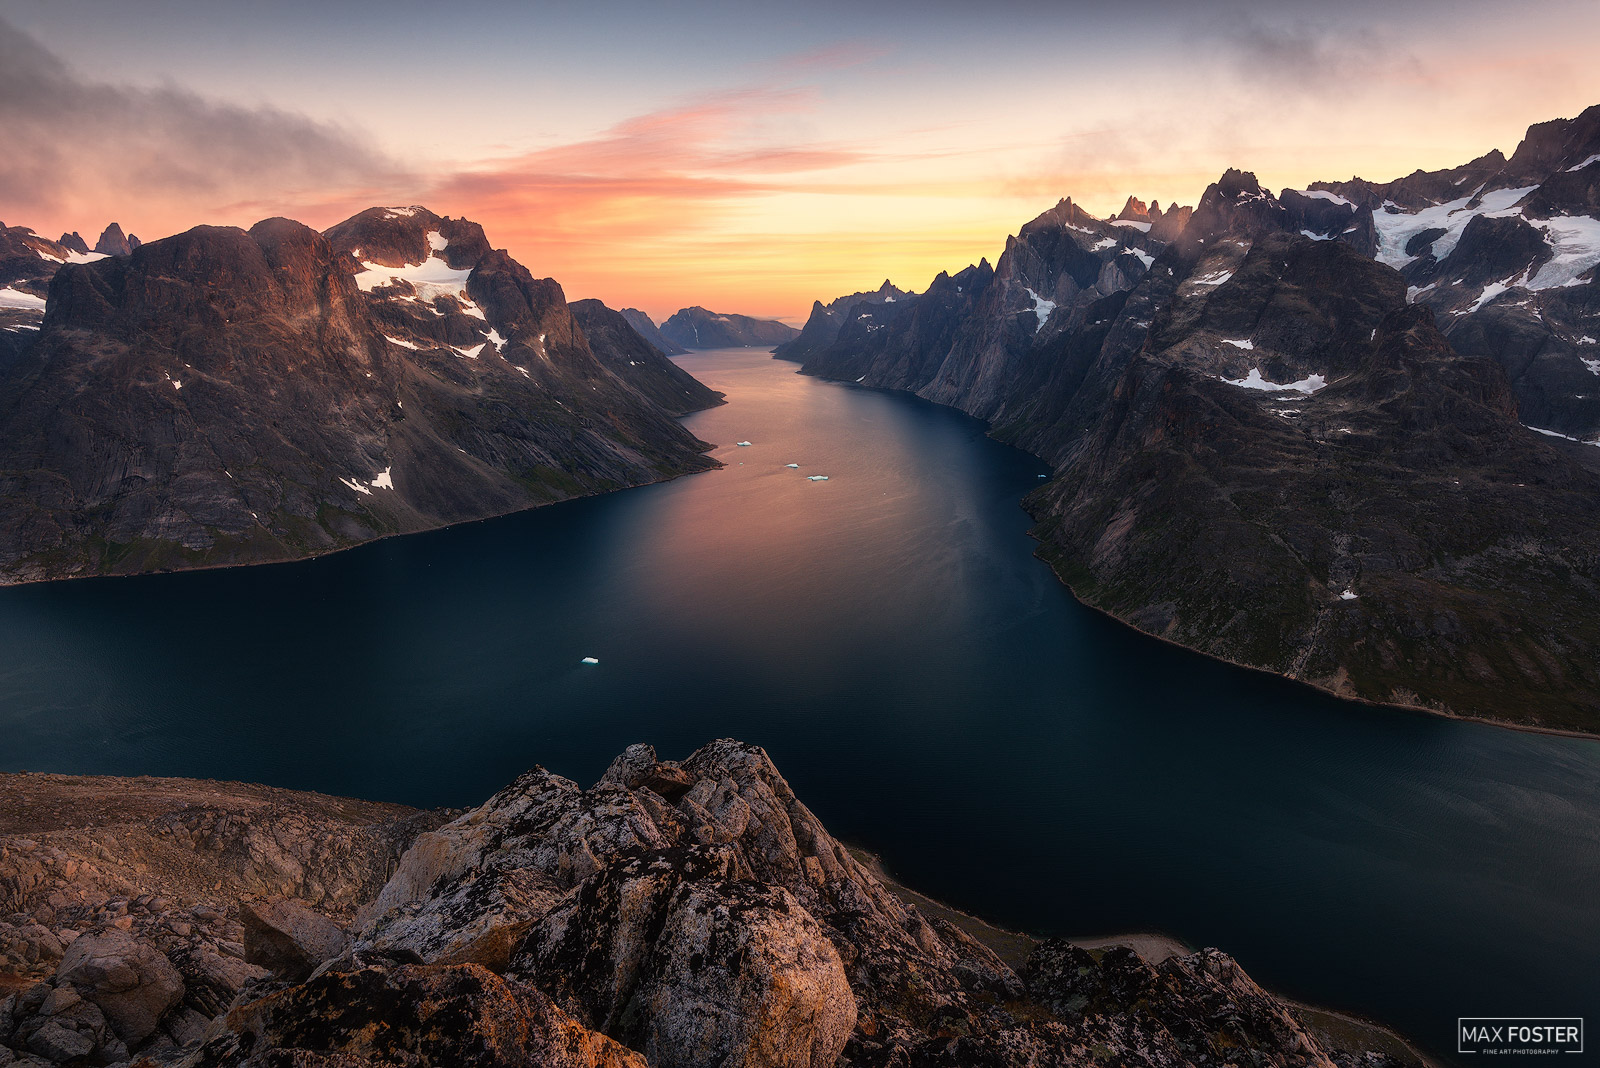 Southern Greenland, The Great Divide, Fjords, Ocean, Glacier, photo